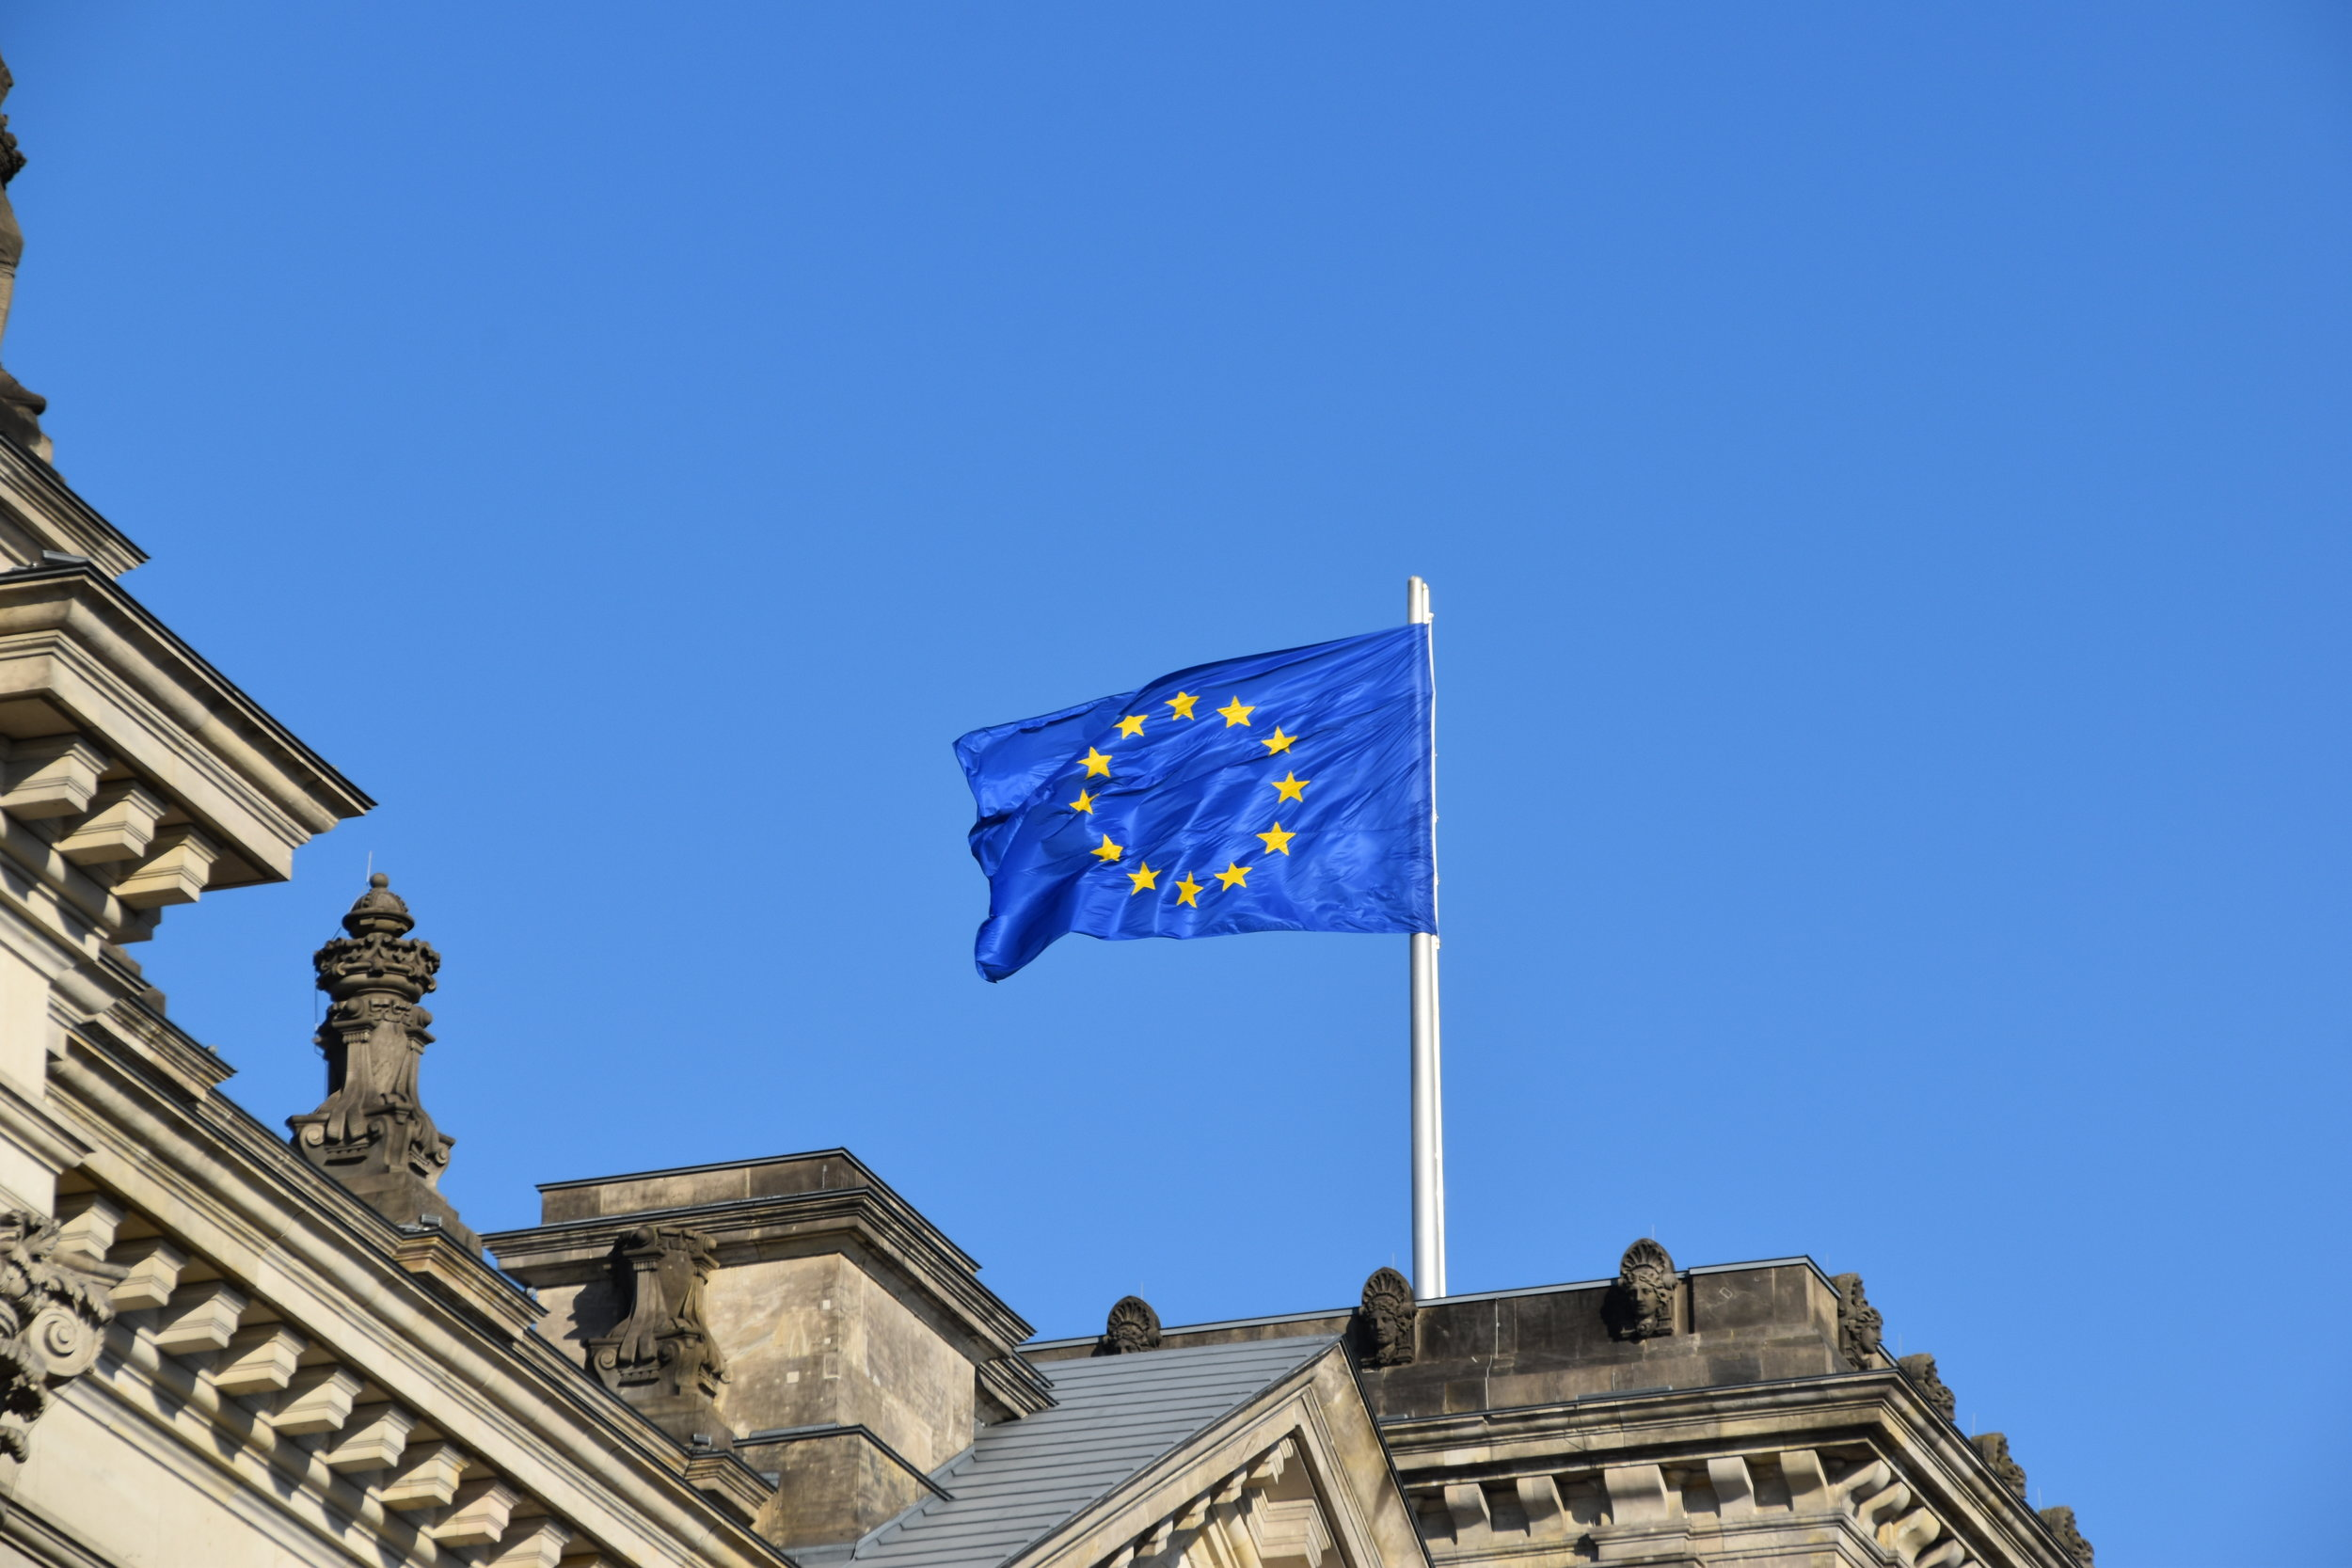 New common drone regulation in Europe adopted. - By Aerondrone, The 11th of June 2019